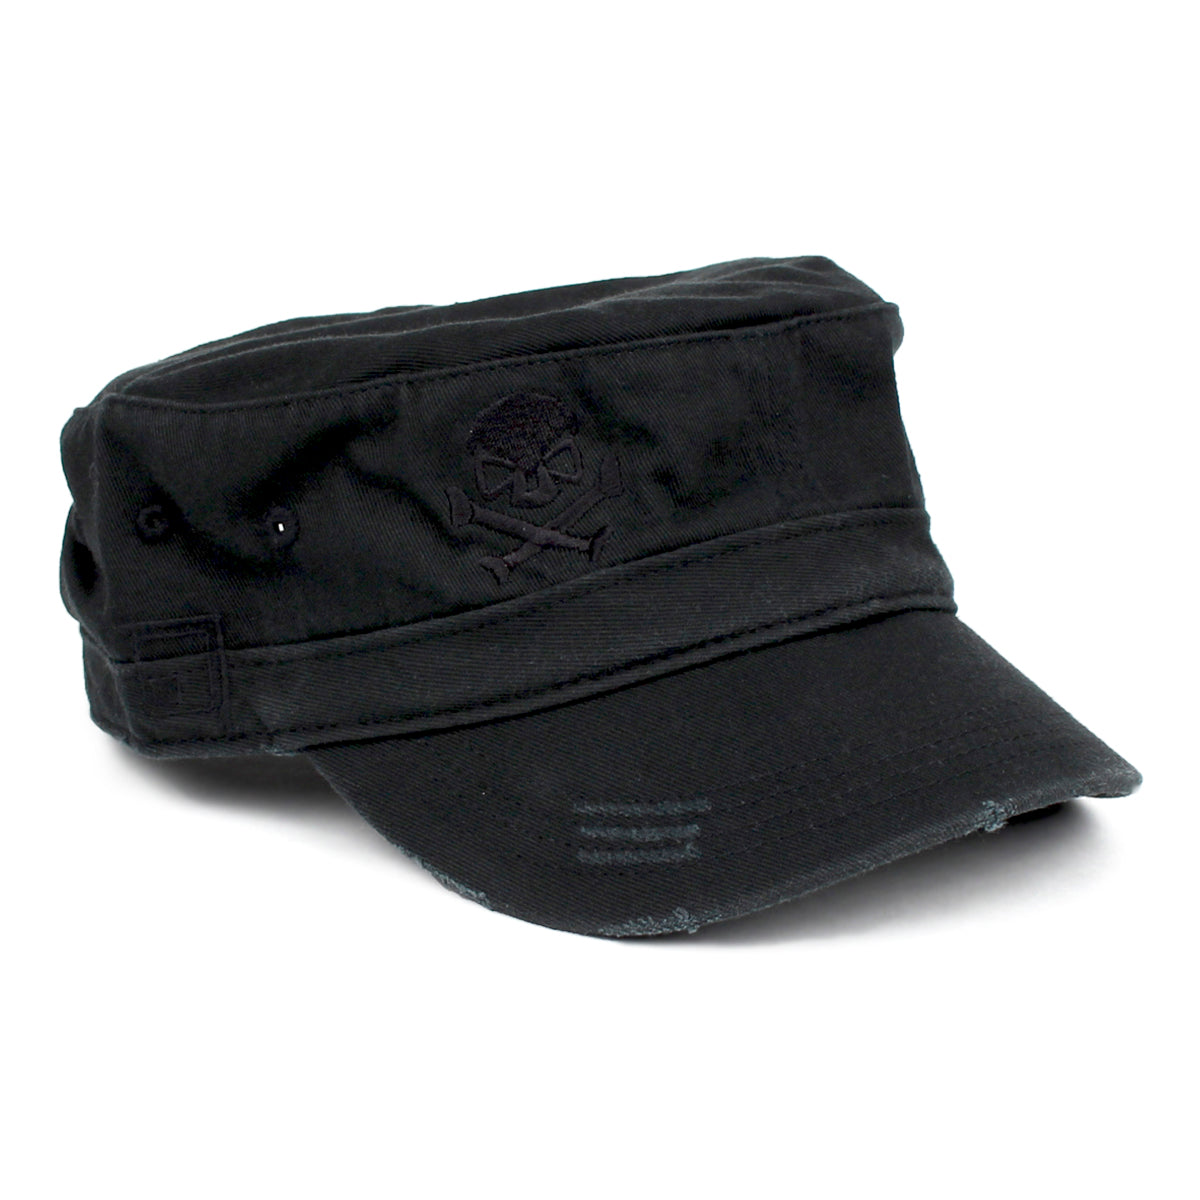 Cadet Cap - Black/Black - Hats - Pipe Hitters Union